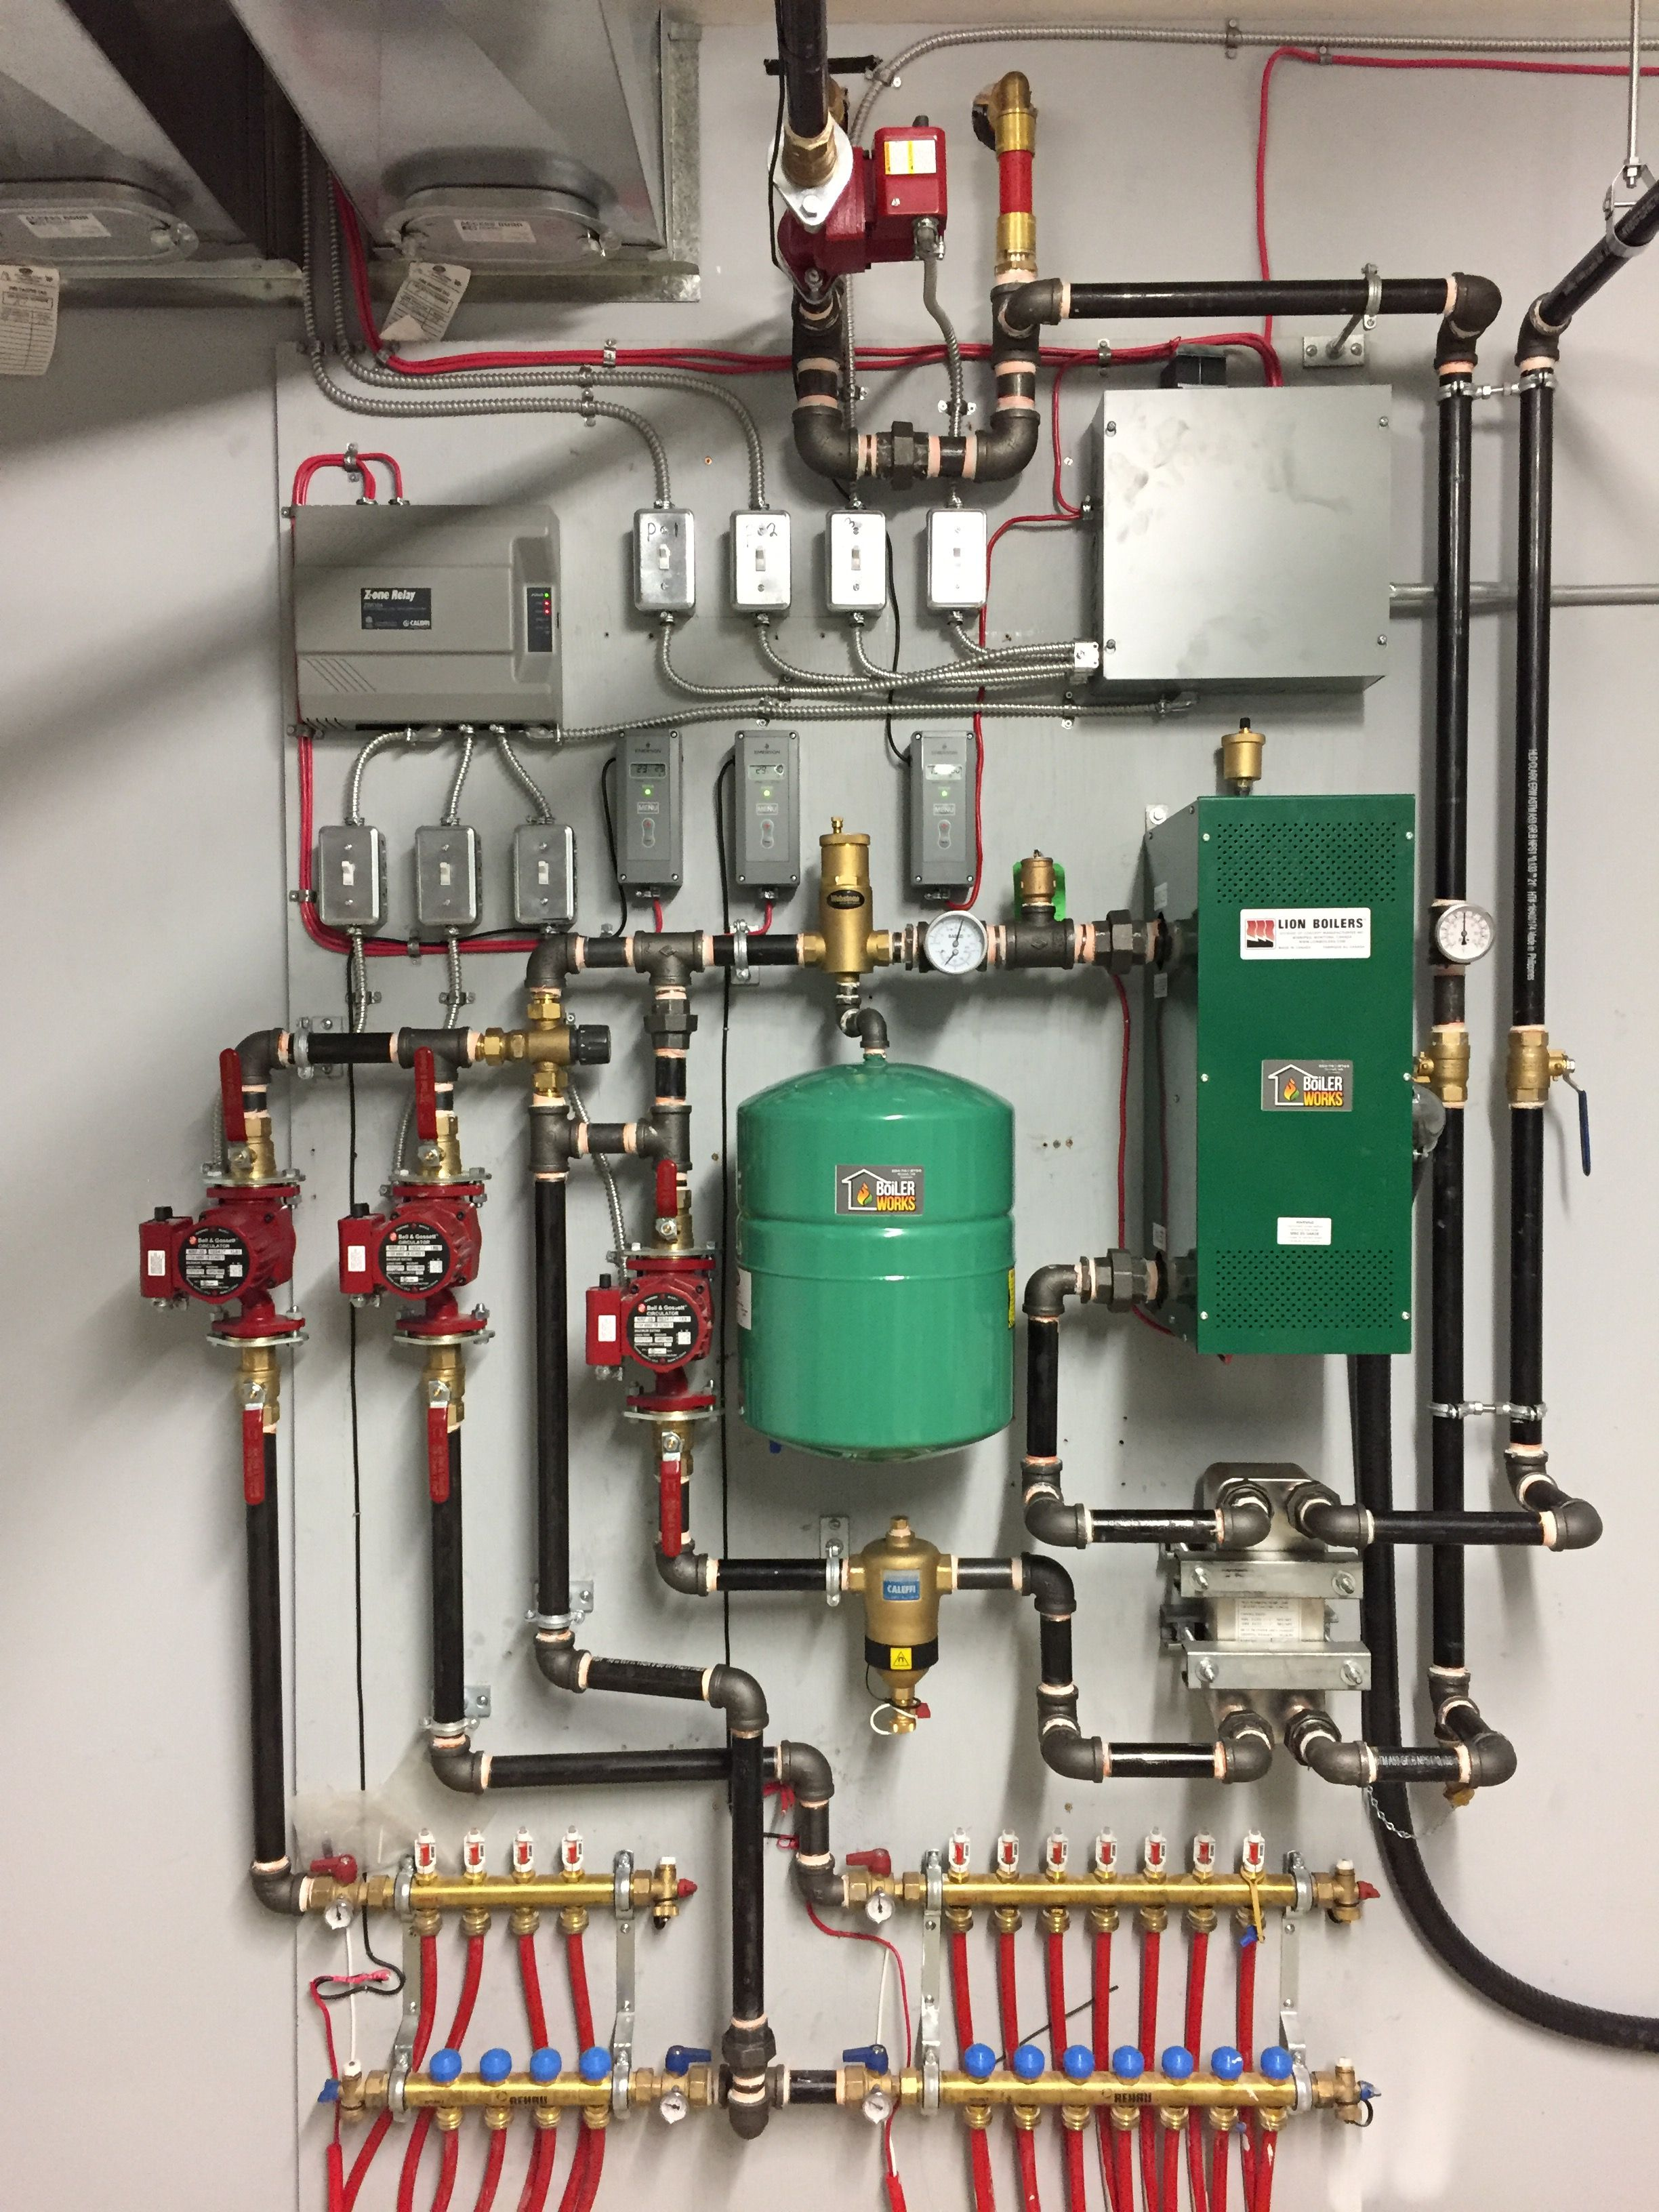 Electric Boiler Backup To A Heatmaster G400 Heating A Two Story Building With Basement Hydronic Heating Systems Underfloor Heating Systems House Heating